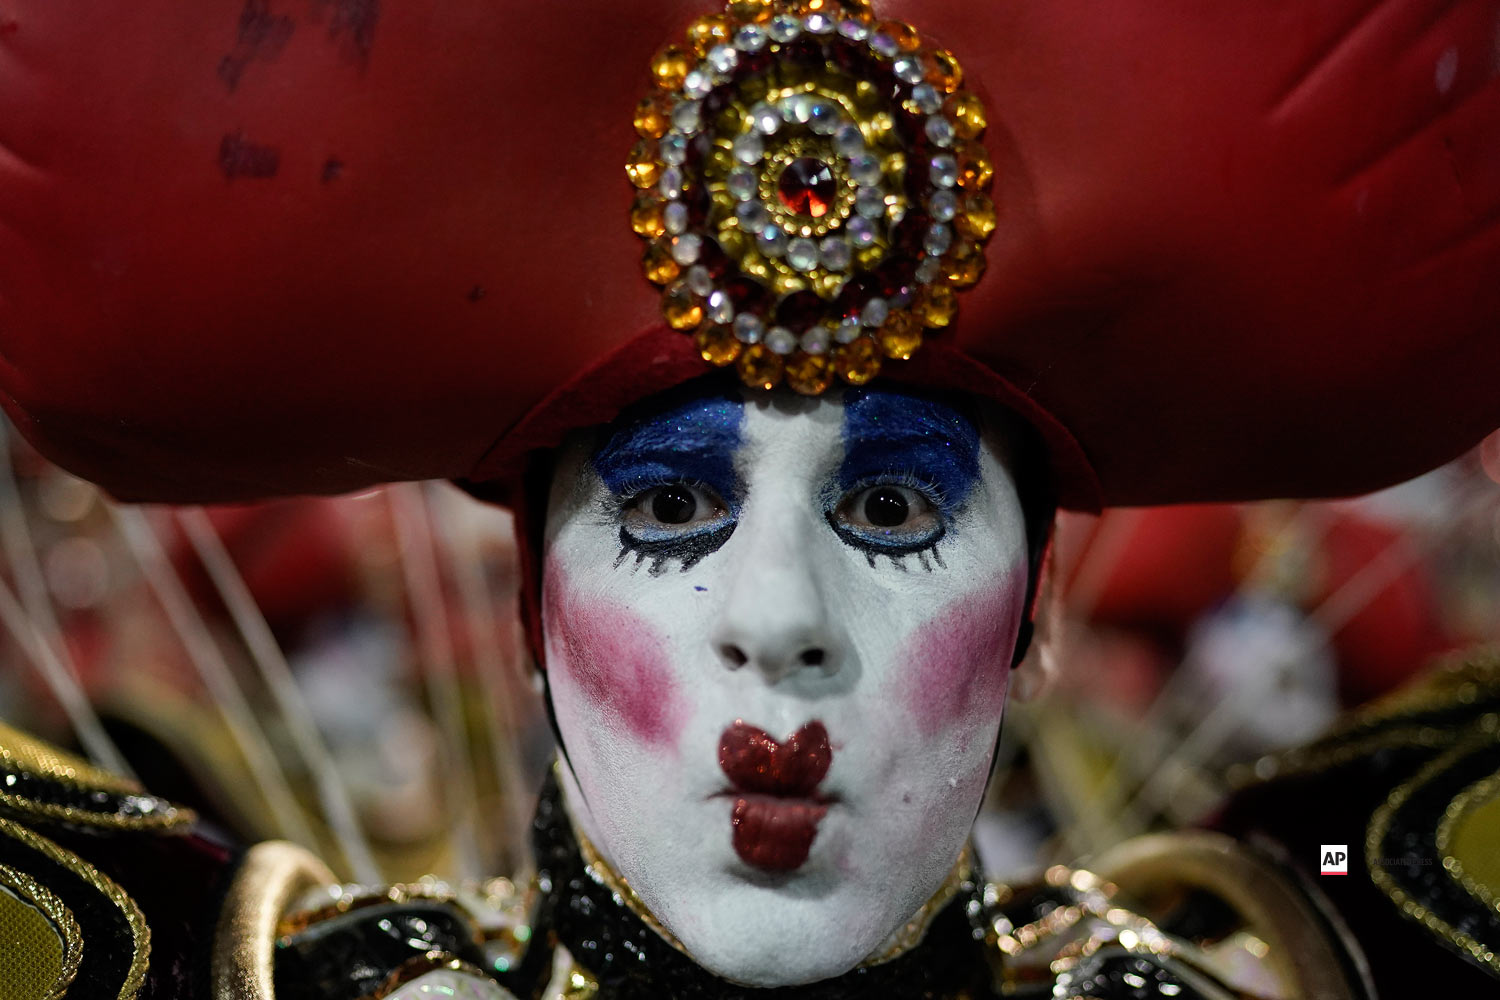 A performer from the Viradouro samba school parades during Carnival celebrations at the Sambadrome in Rio de Janeiro, Brazil, Sunday, March 3, 2019. (AP Photo/Leo Correa)